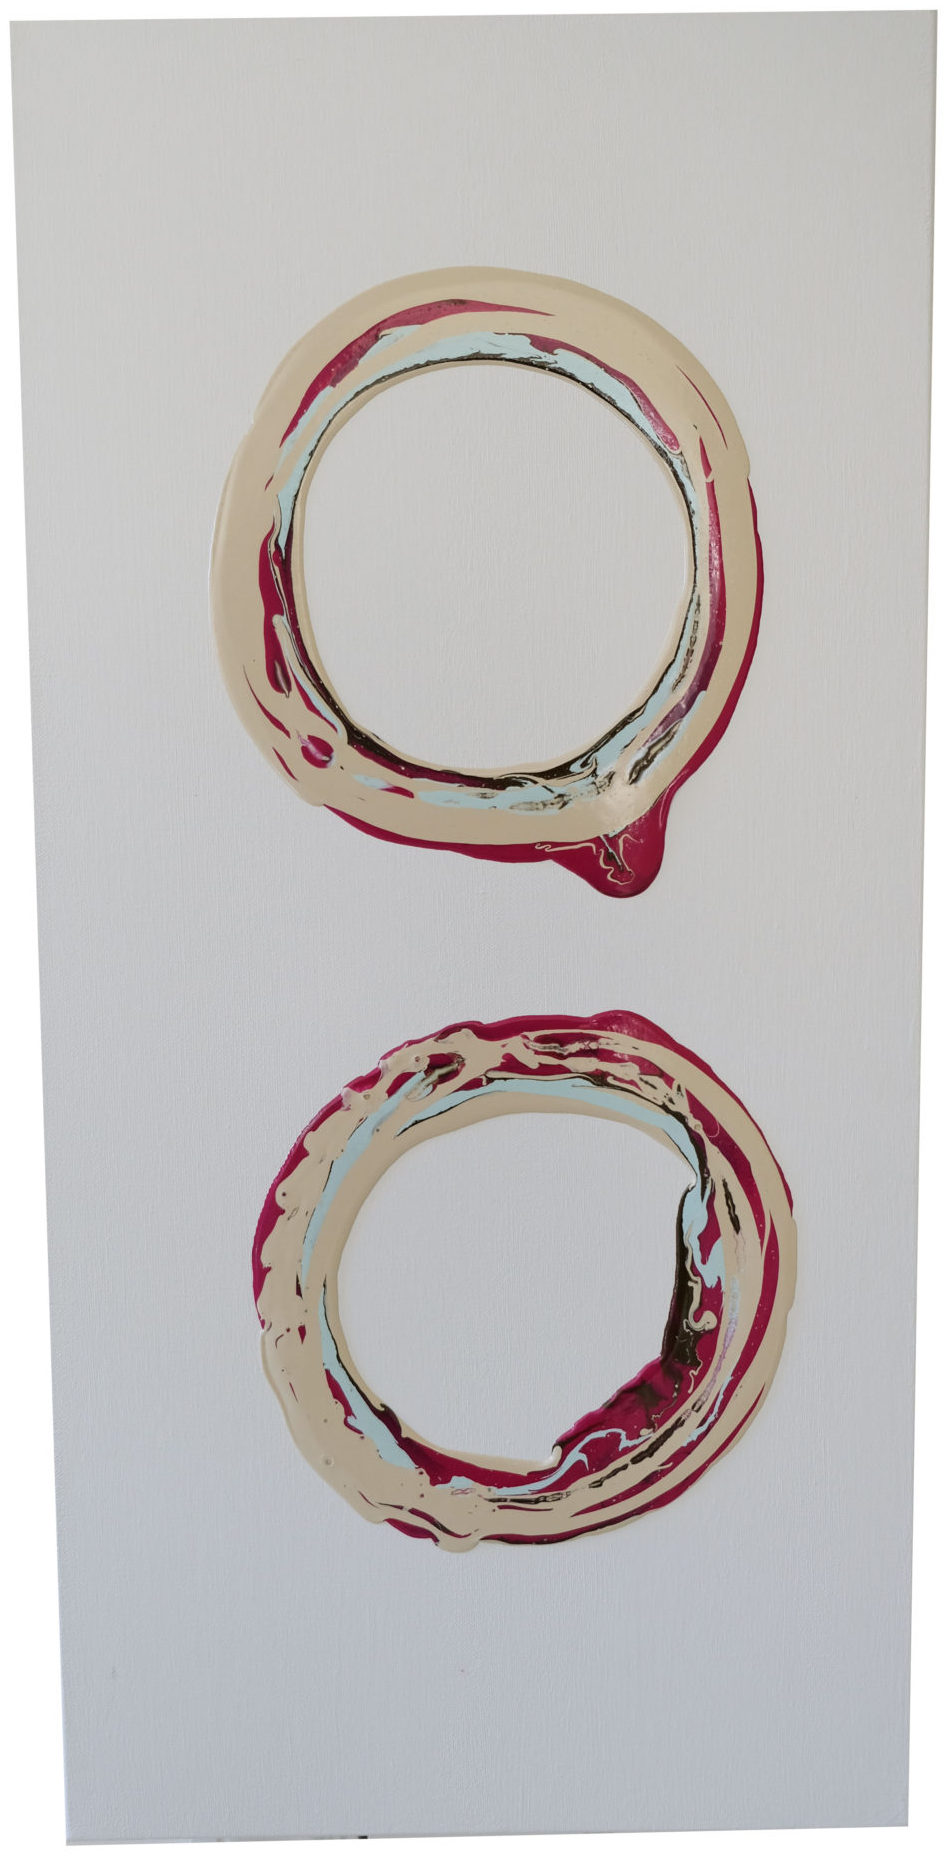 An original abstract acrylic painting by Caitlin Wheeler art in Washington DC featuring two circular donuts that are multi-color